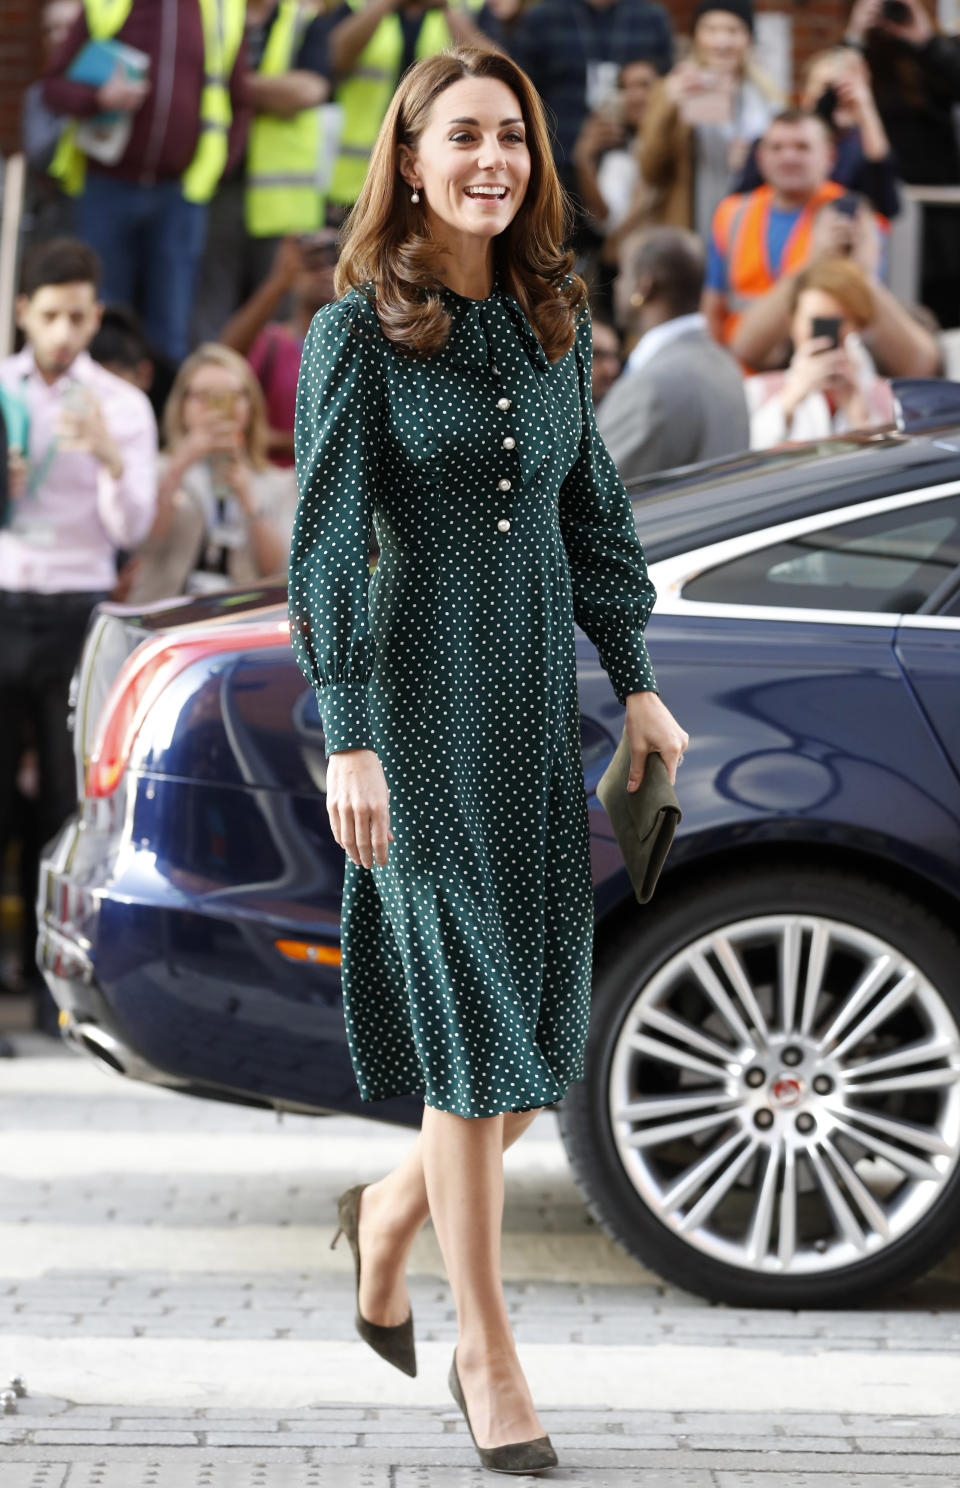 The duchess wore a polka-dot dress from L.K. Bennett. (Photo: Chris Jackson/Getty Images)